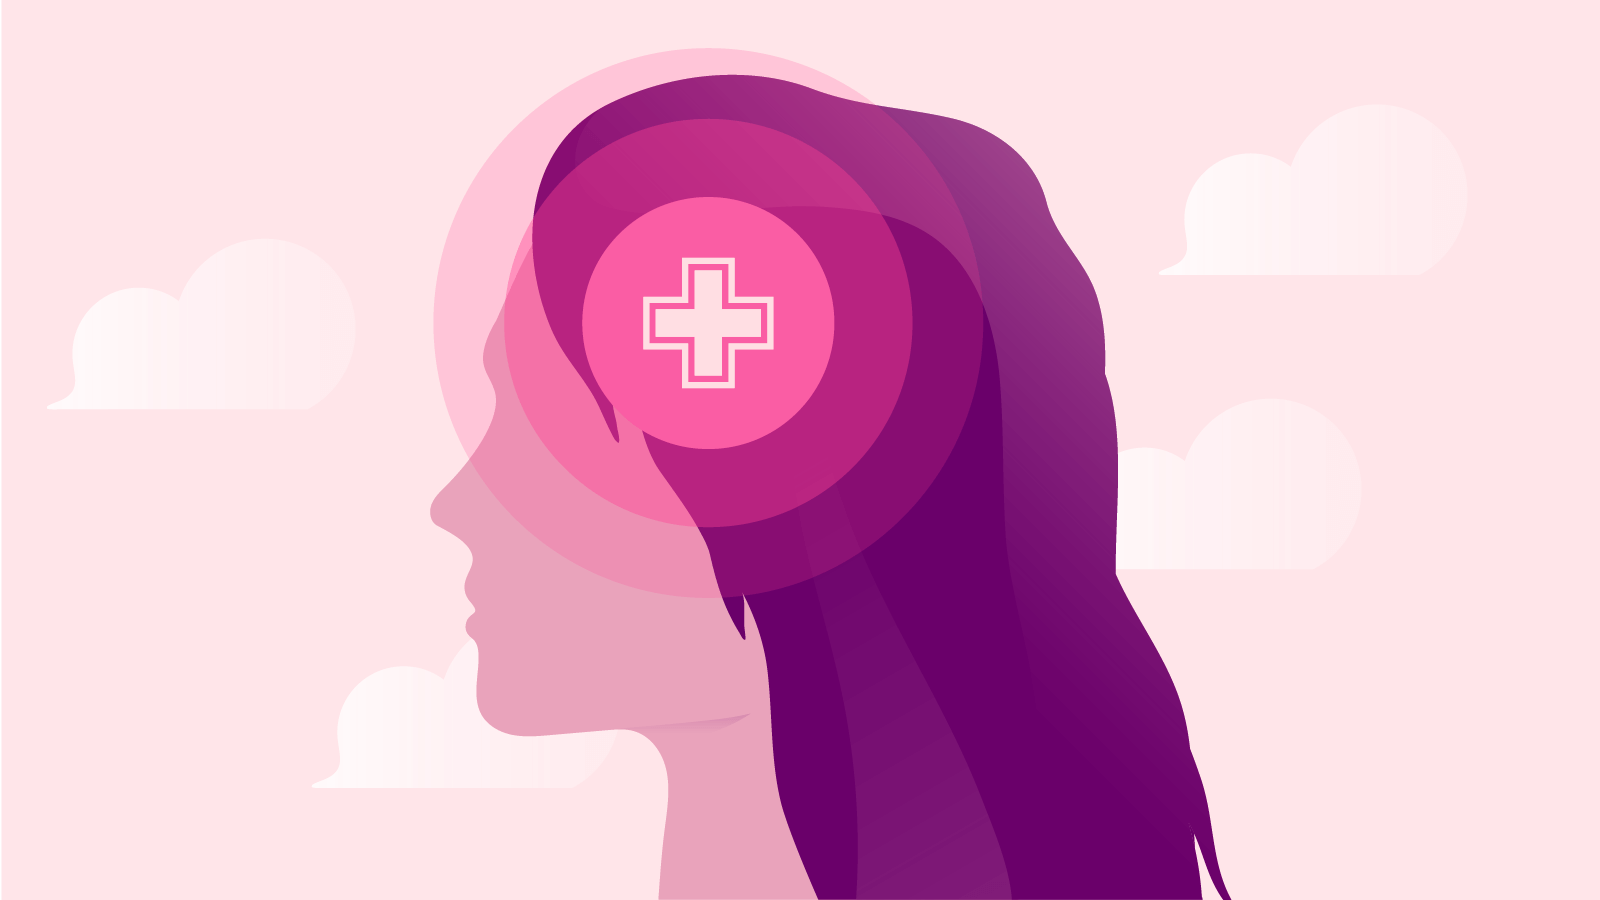 Illustration of a female head with a health sign